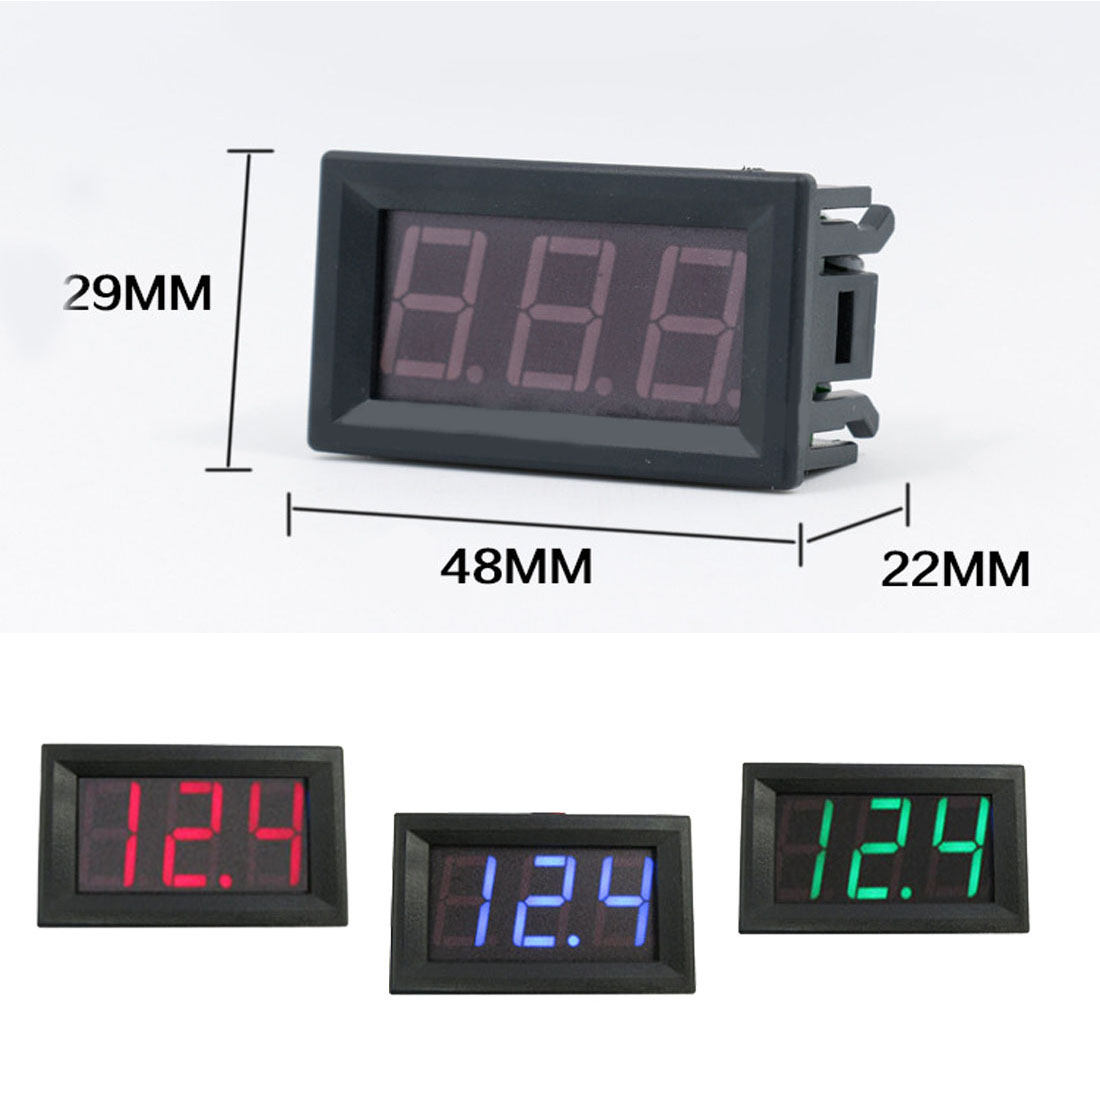 1pcs High Quality 0.56 inch LED DC 4.50V-30.0V Digital Voltmeter Home Use Voltage Display 2 Wires Red And Black